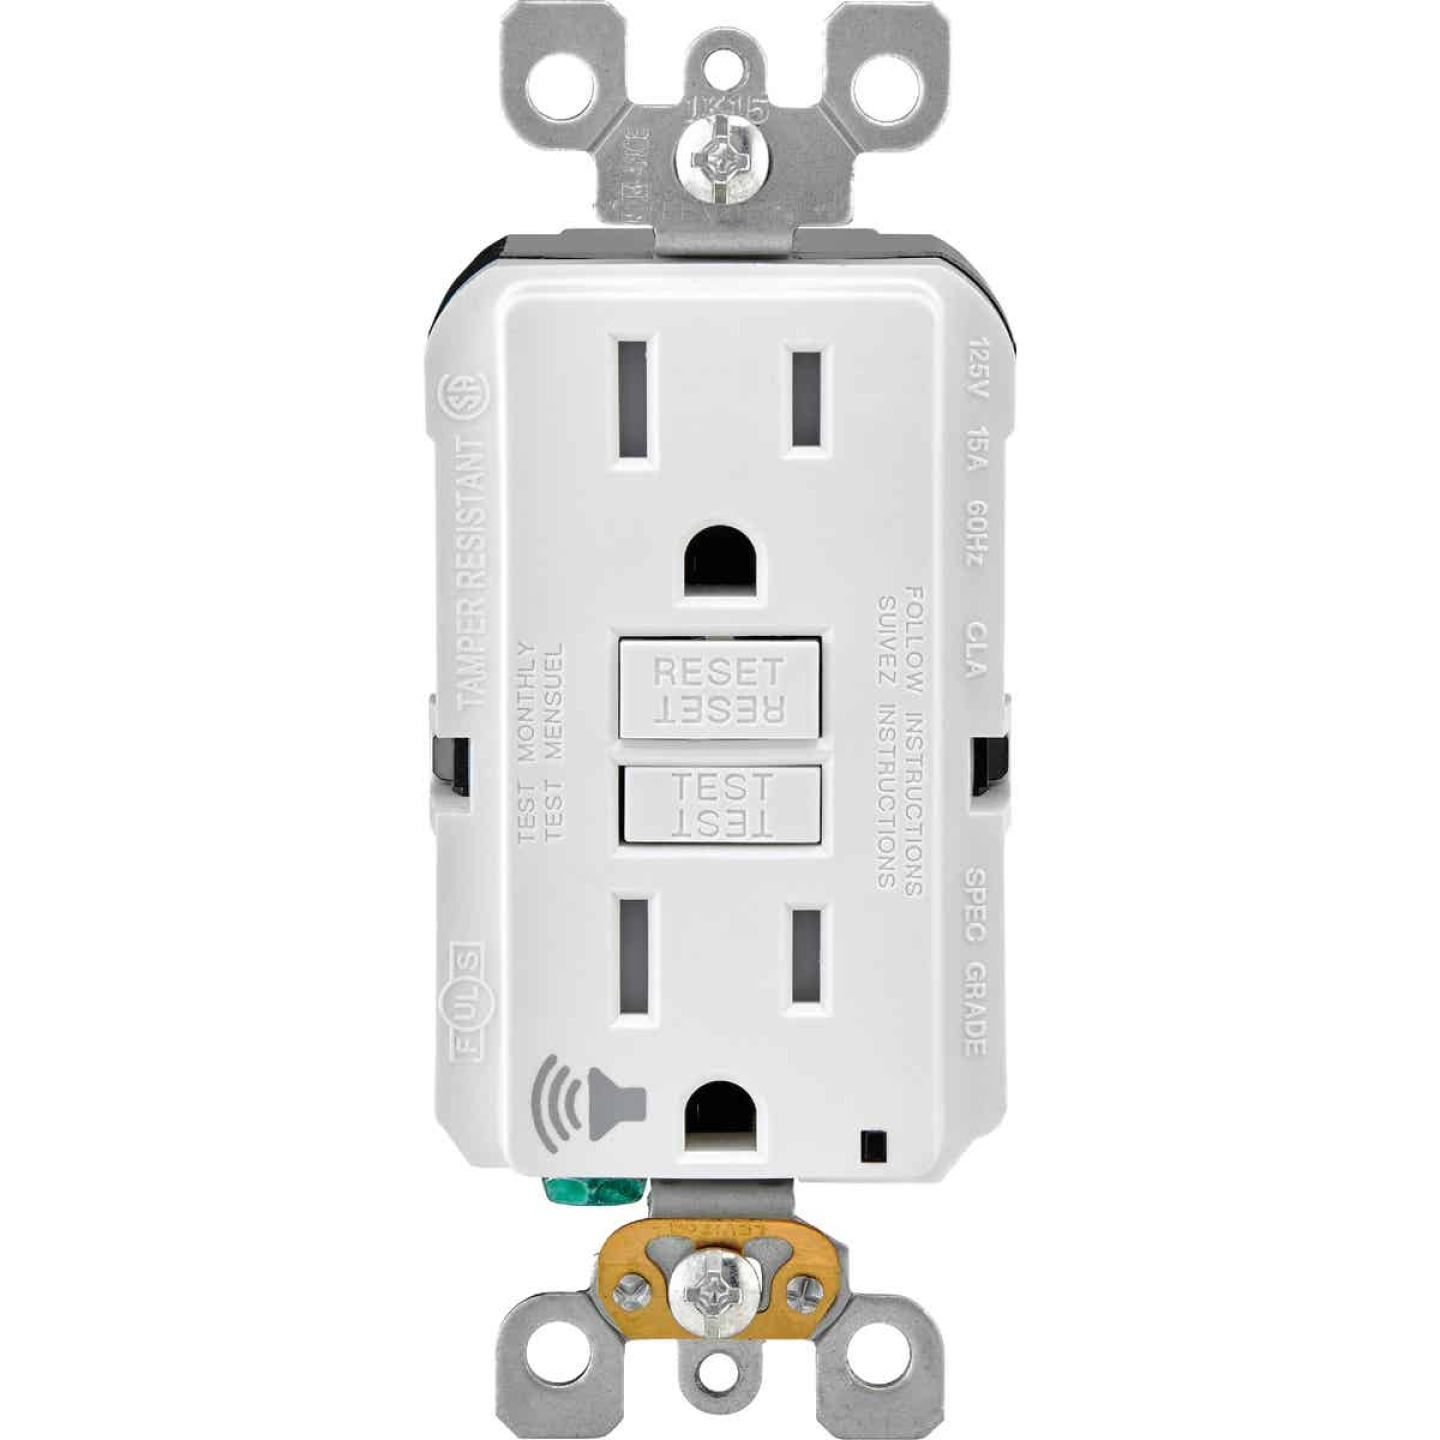 Leviton SmartLockPro Audible Trip Alert 15A White Residential Grade 5-15R Self-Test GFCI Outlet Image 1